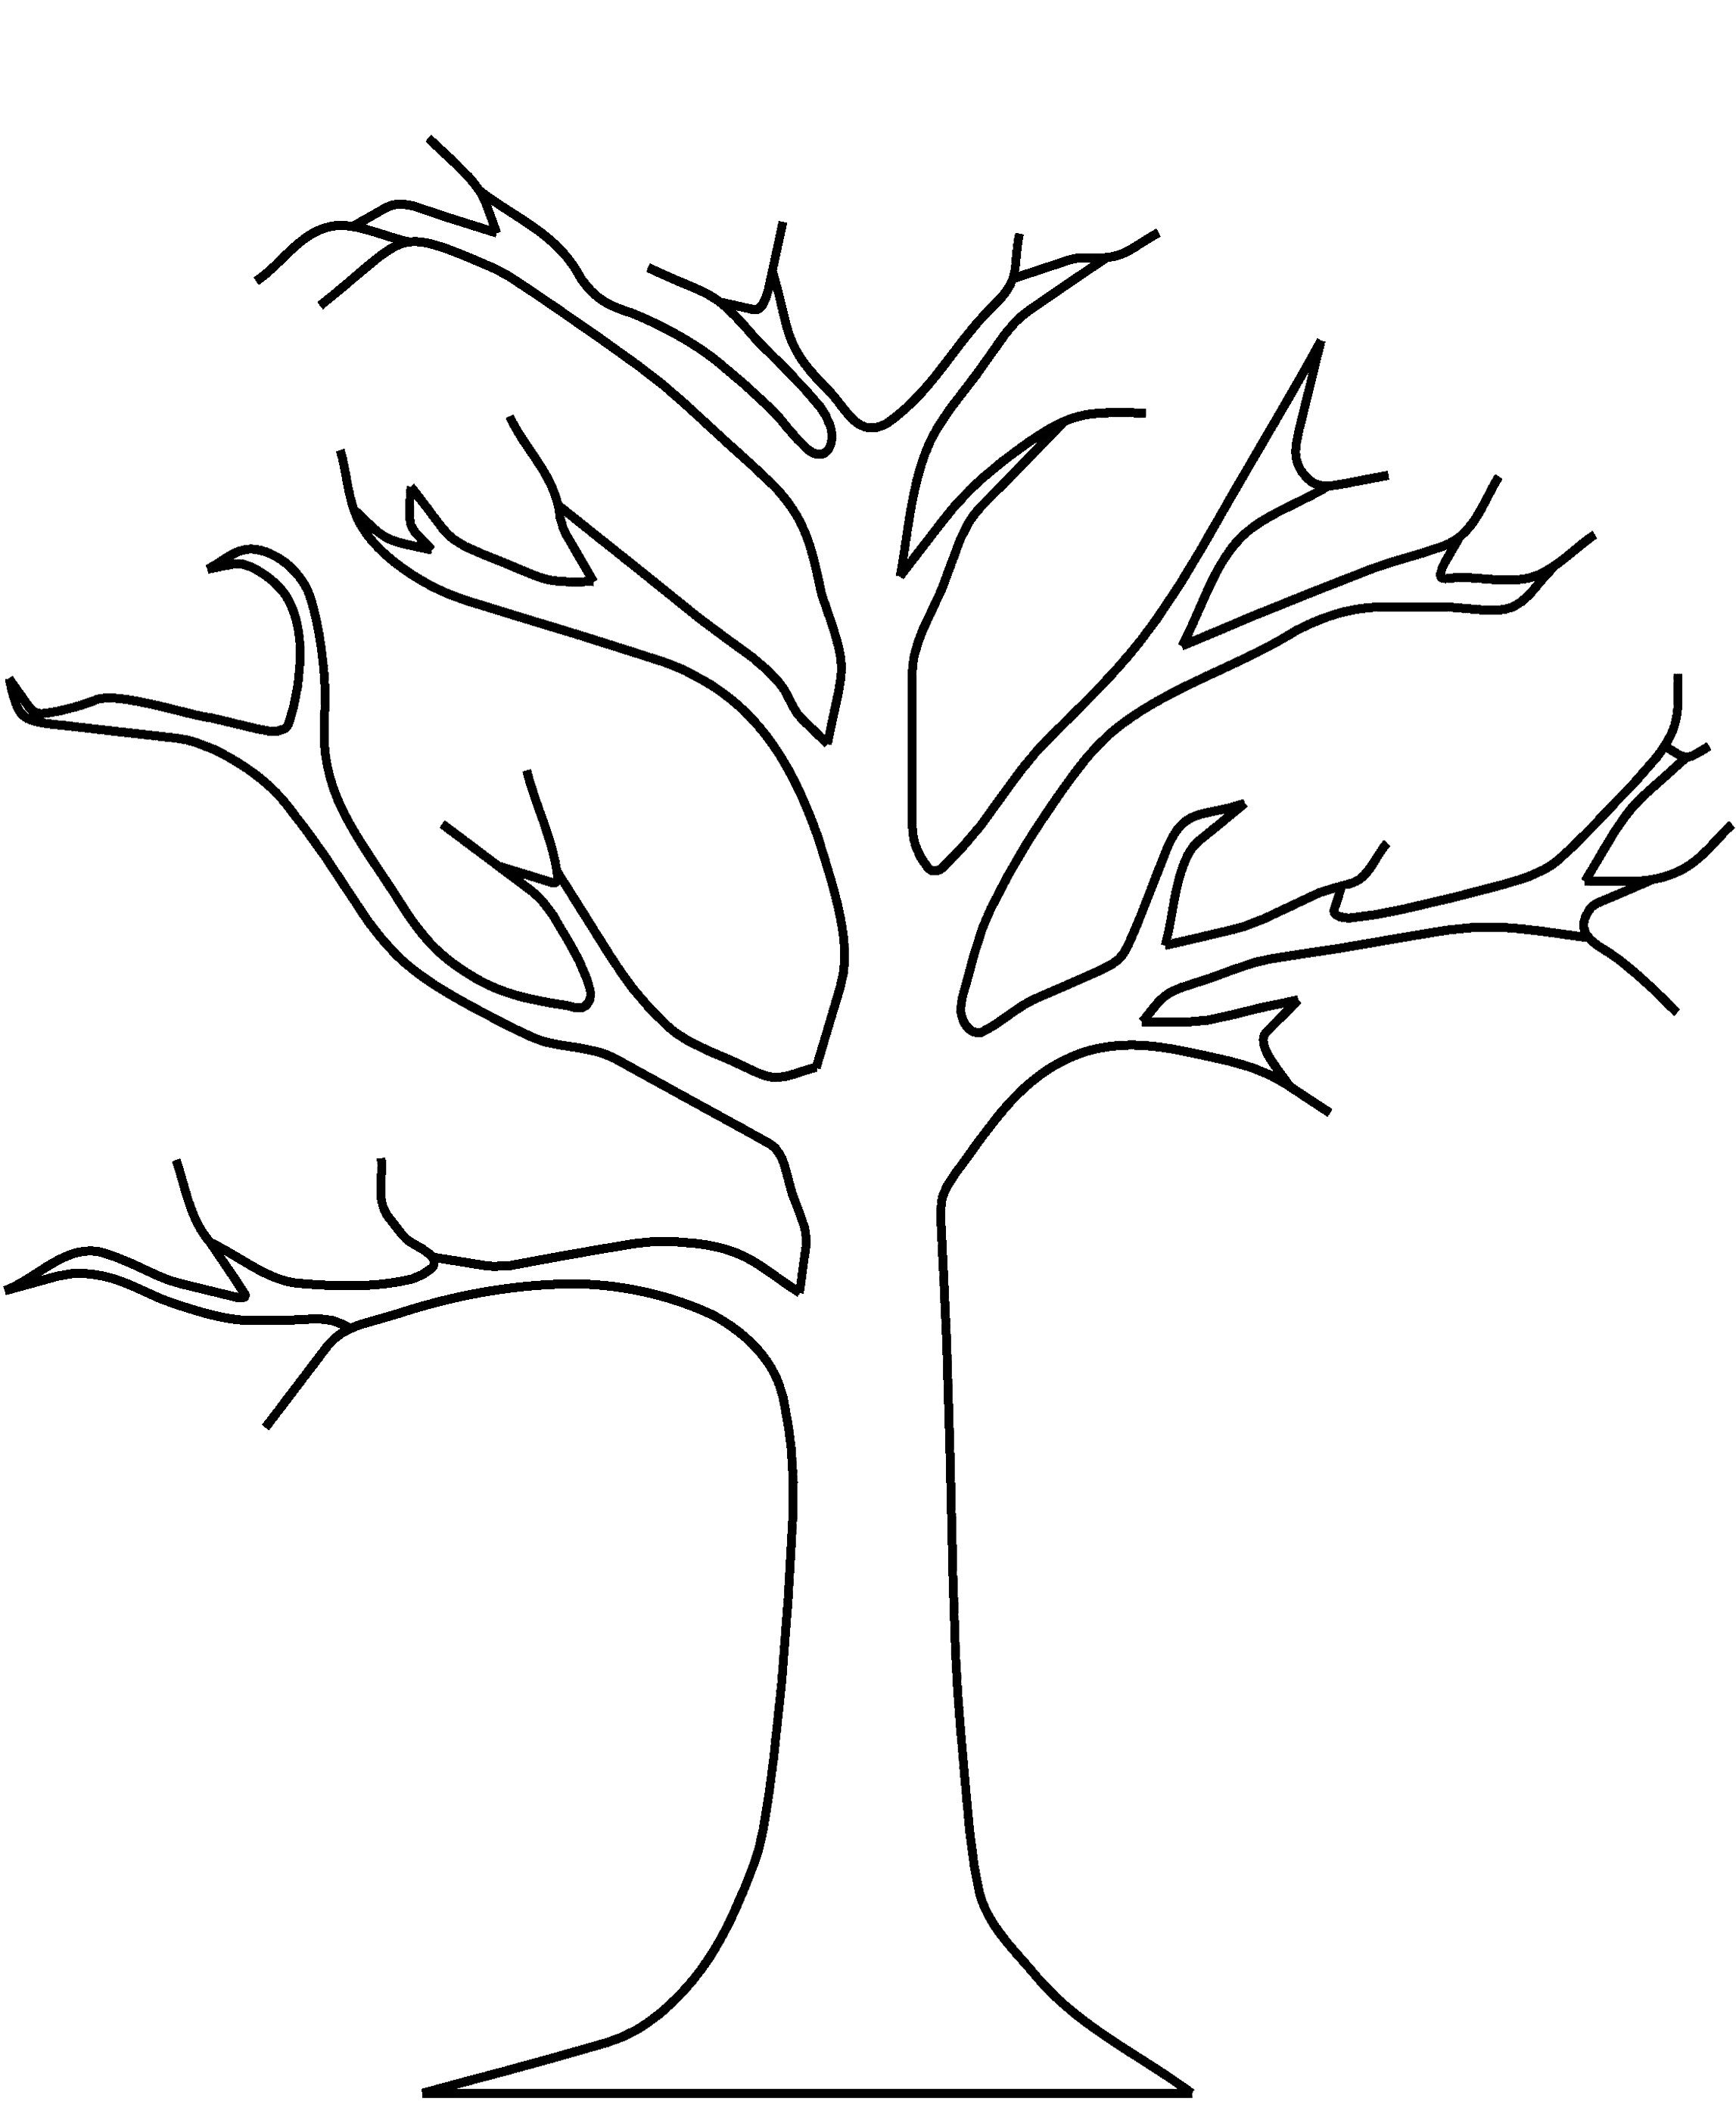 coloring pages of trees # 16